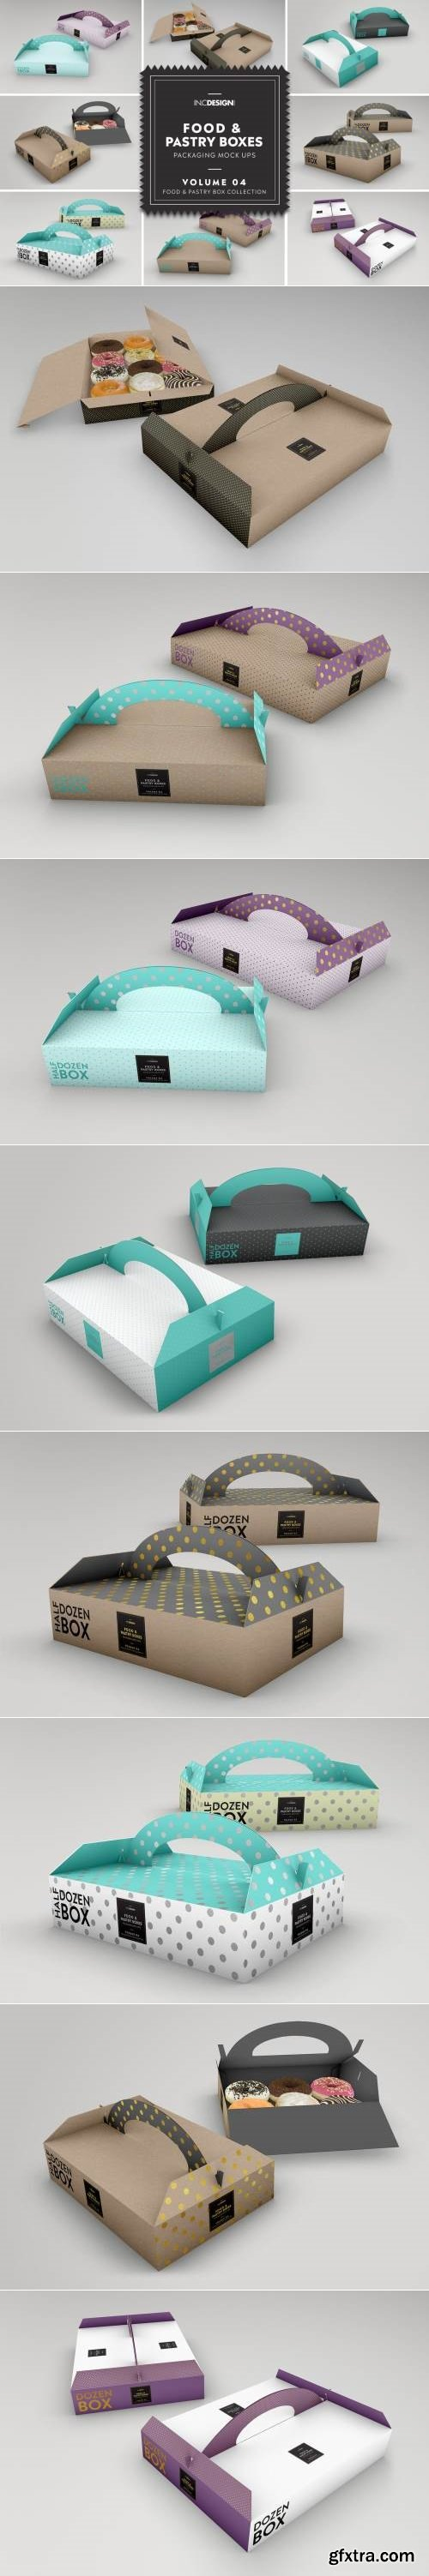 Food Pastry Boxes Vol.4: Packaging Mockups